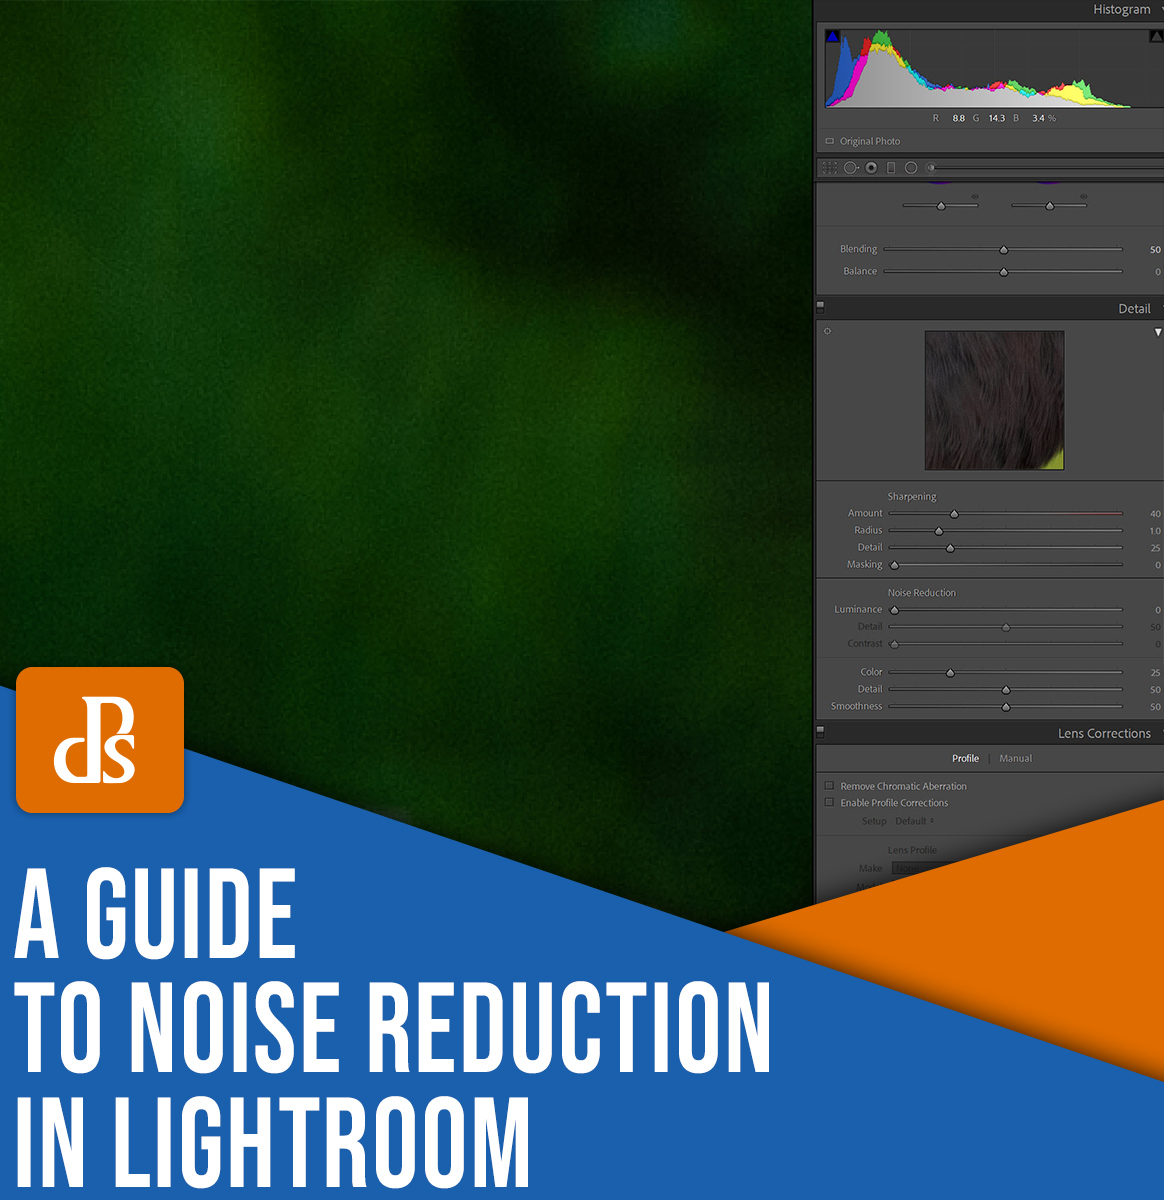 A guide to noise reduction in Lightroom